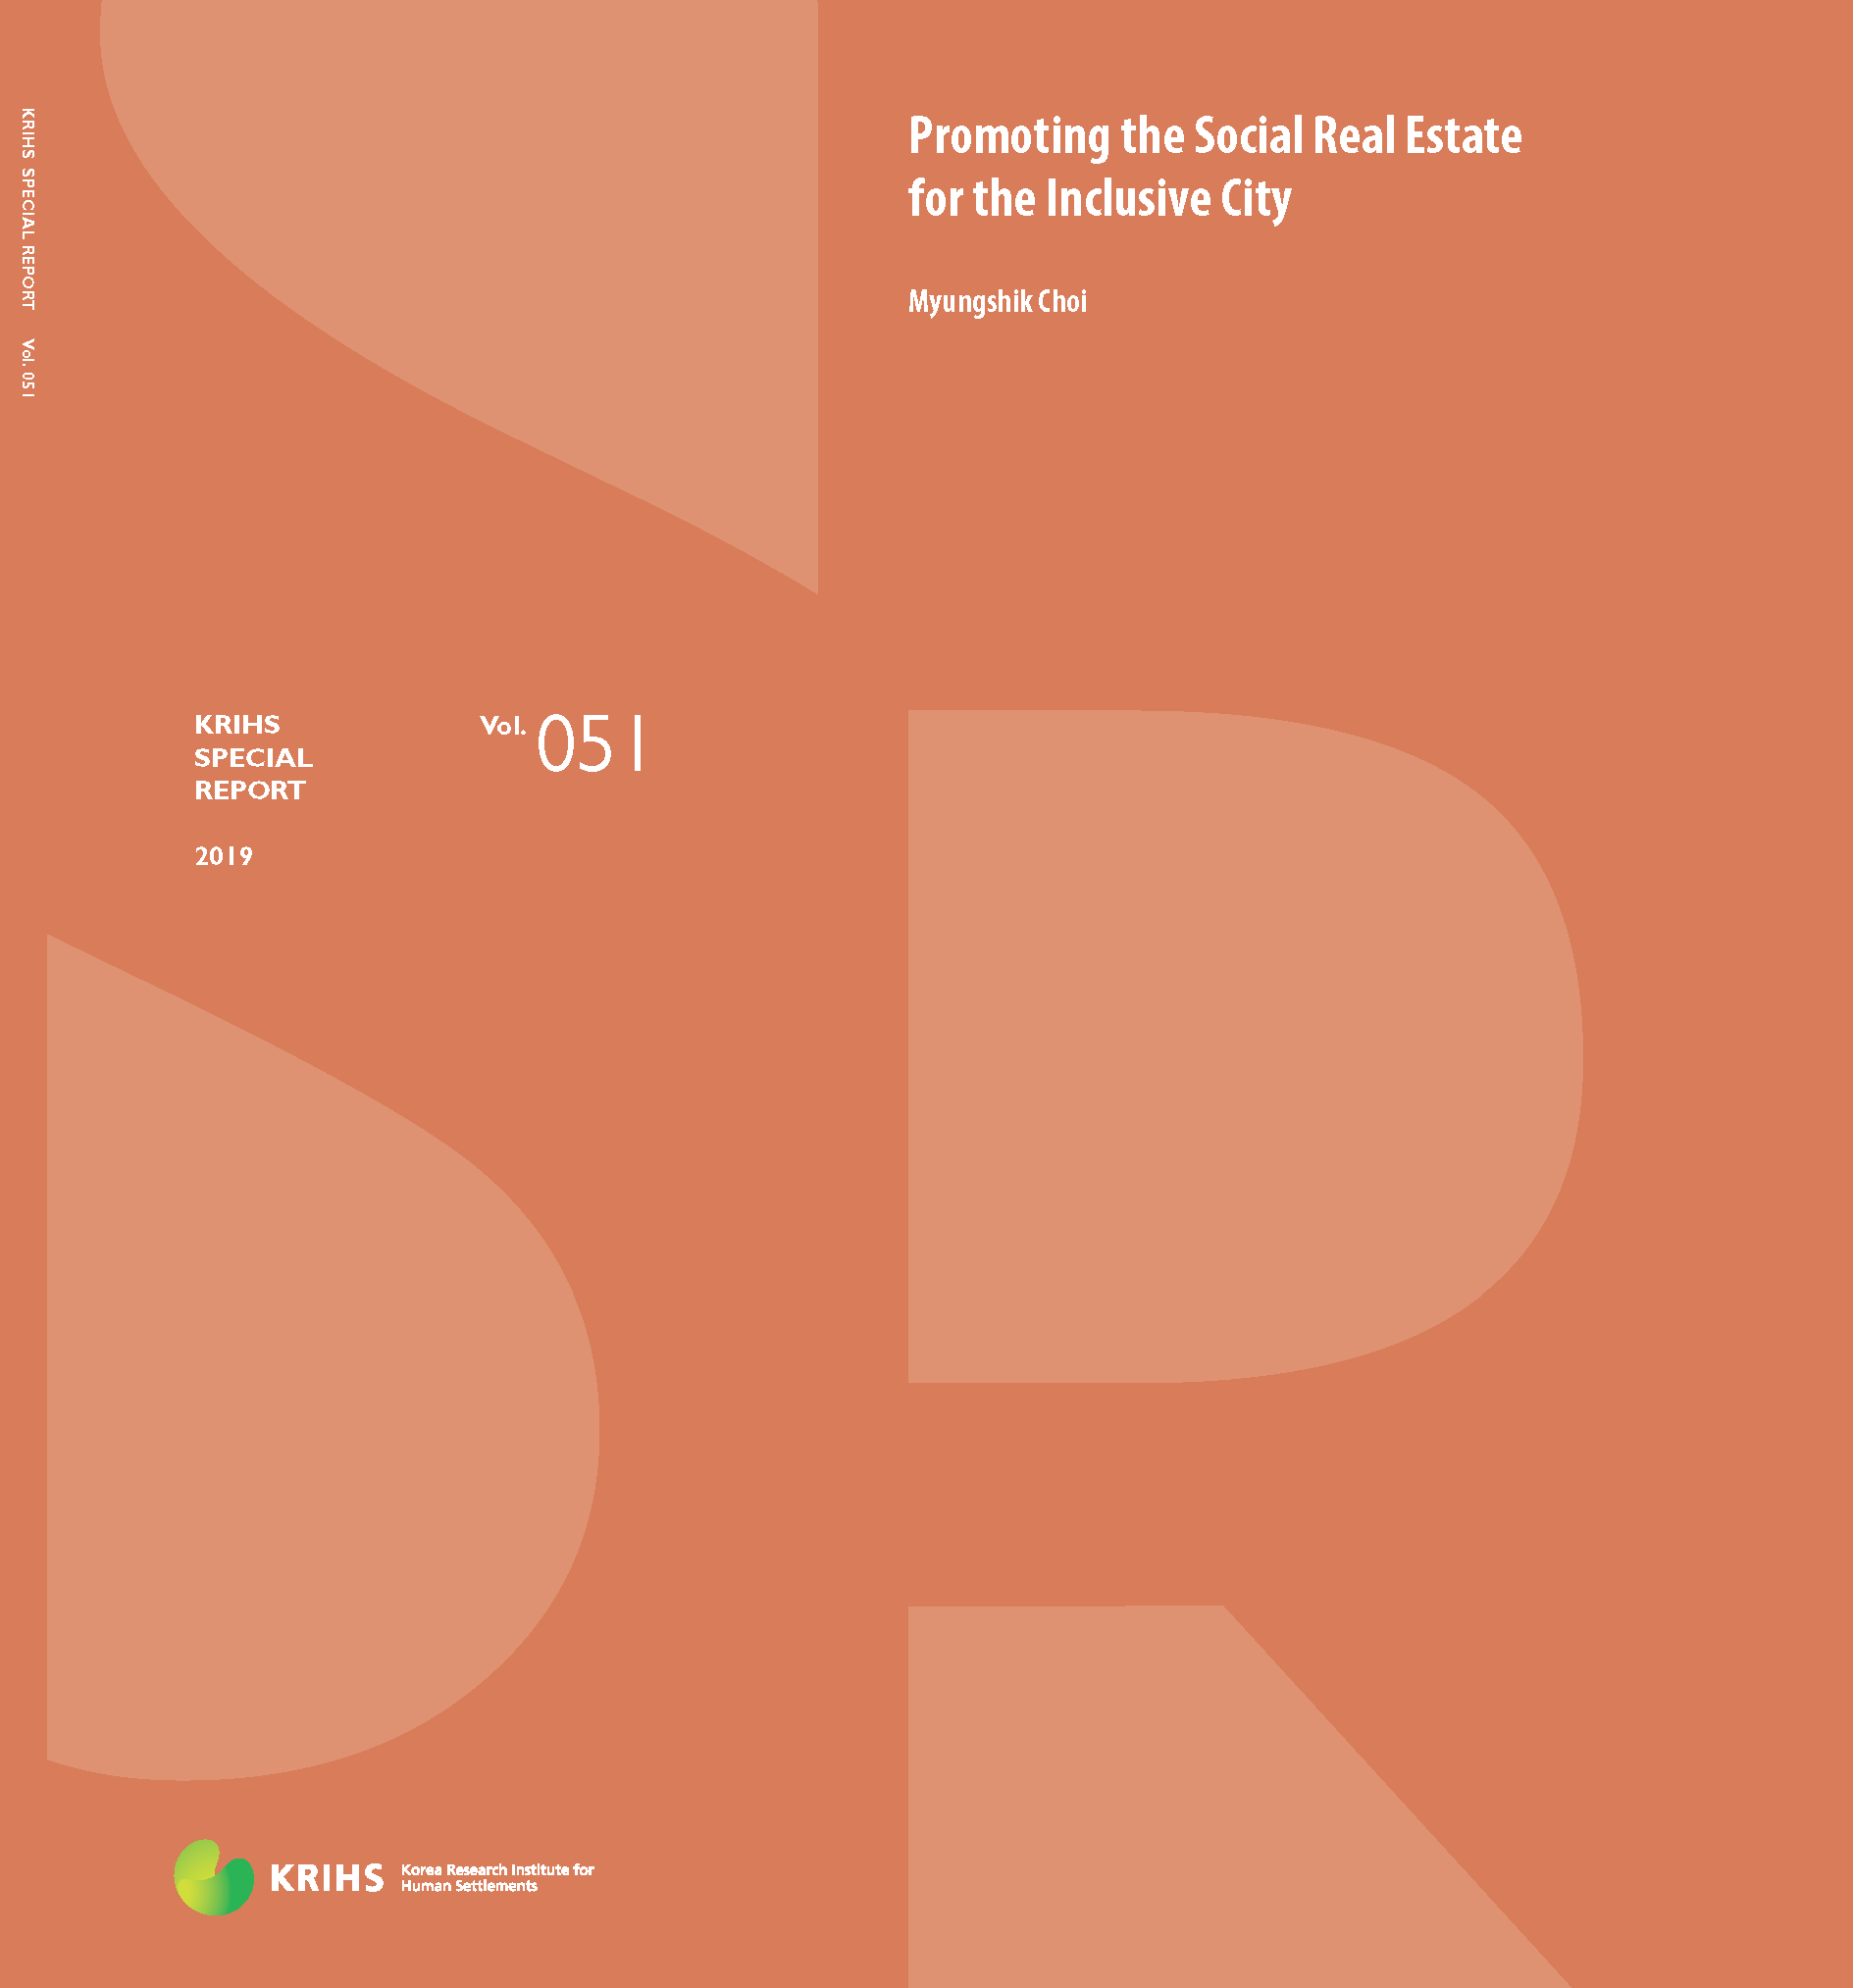 [KRIHS SPECIAL REPORT 51] Promoting the Social Real Estate for the Inclusive City표지